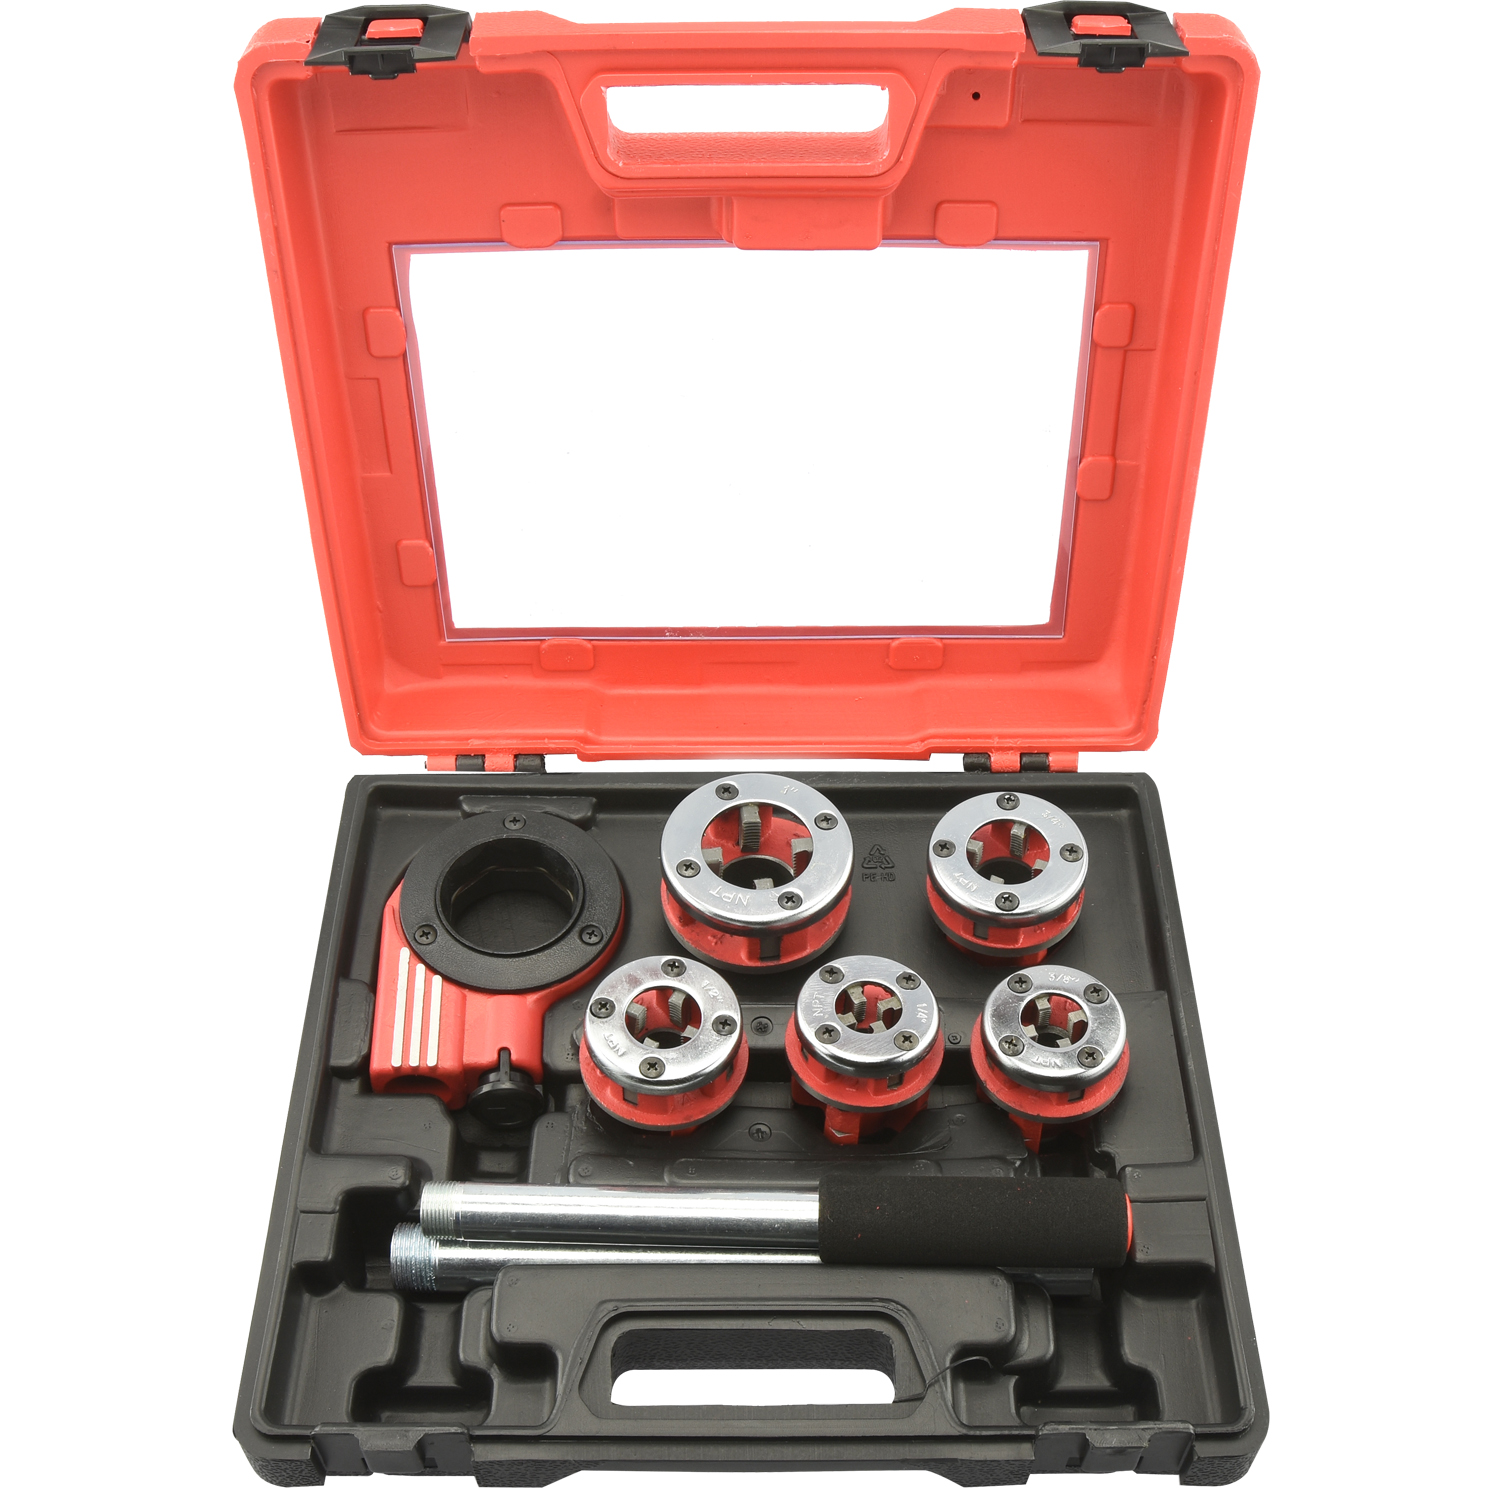 Neiko Pipe Threader | 9pc Heavy Duty Ratcheting Die Set for Plumbing DIY Plumber Tool